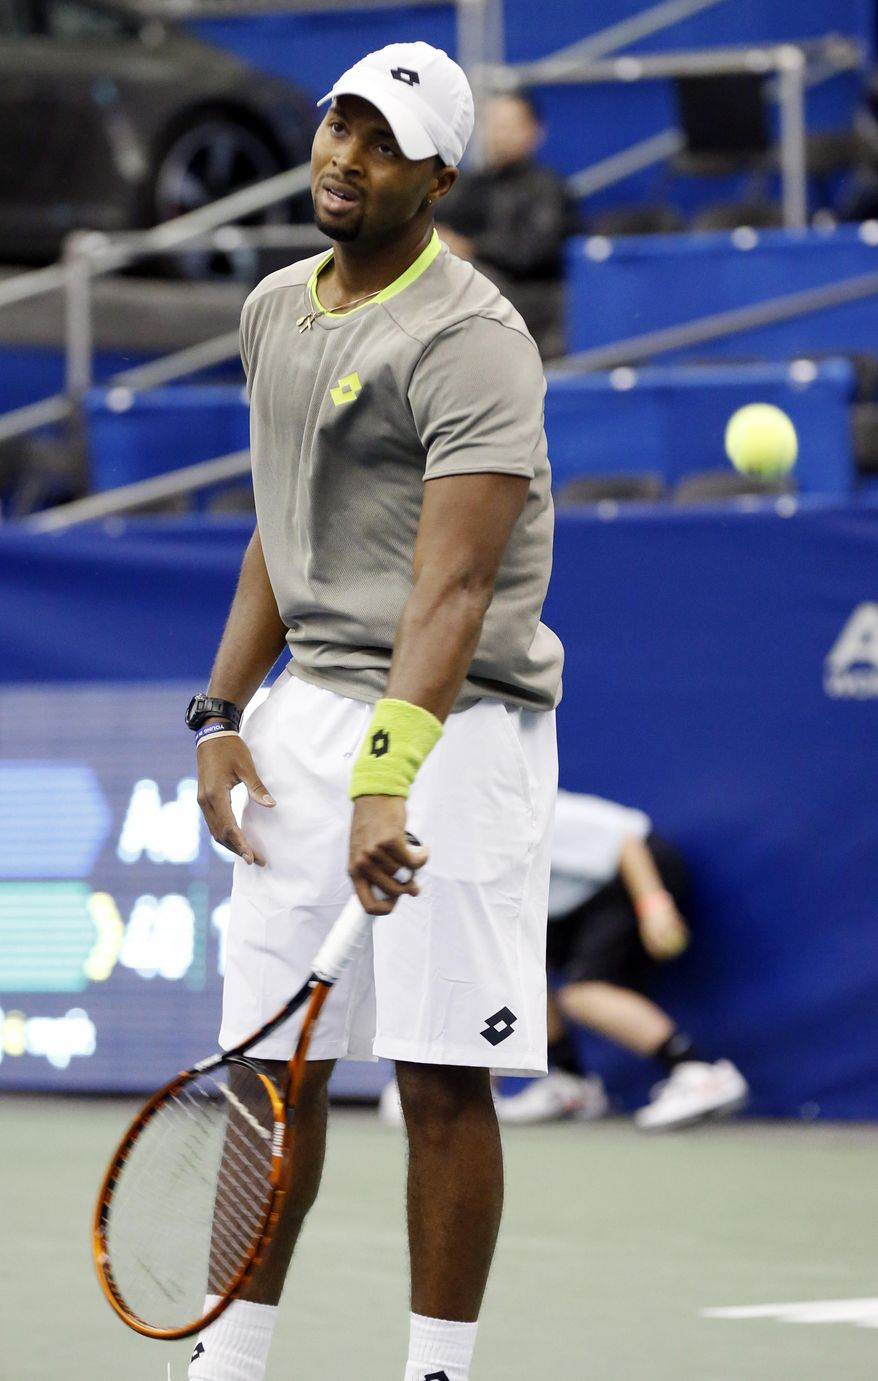 Donald Young reacts to missing a return by  Denis Kudla in the second round match at the U.S. National Indoor Tennis  Championships on Wednesday, Feb. 12, 2014, in Memphis, Tenn. (AP Photo/Rogelio V. Solis)